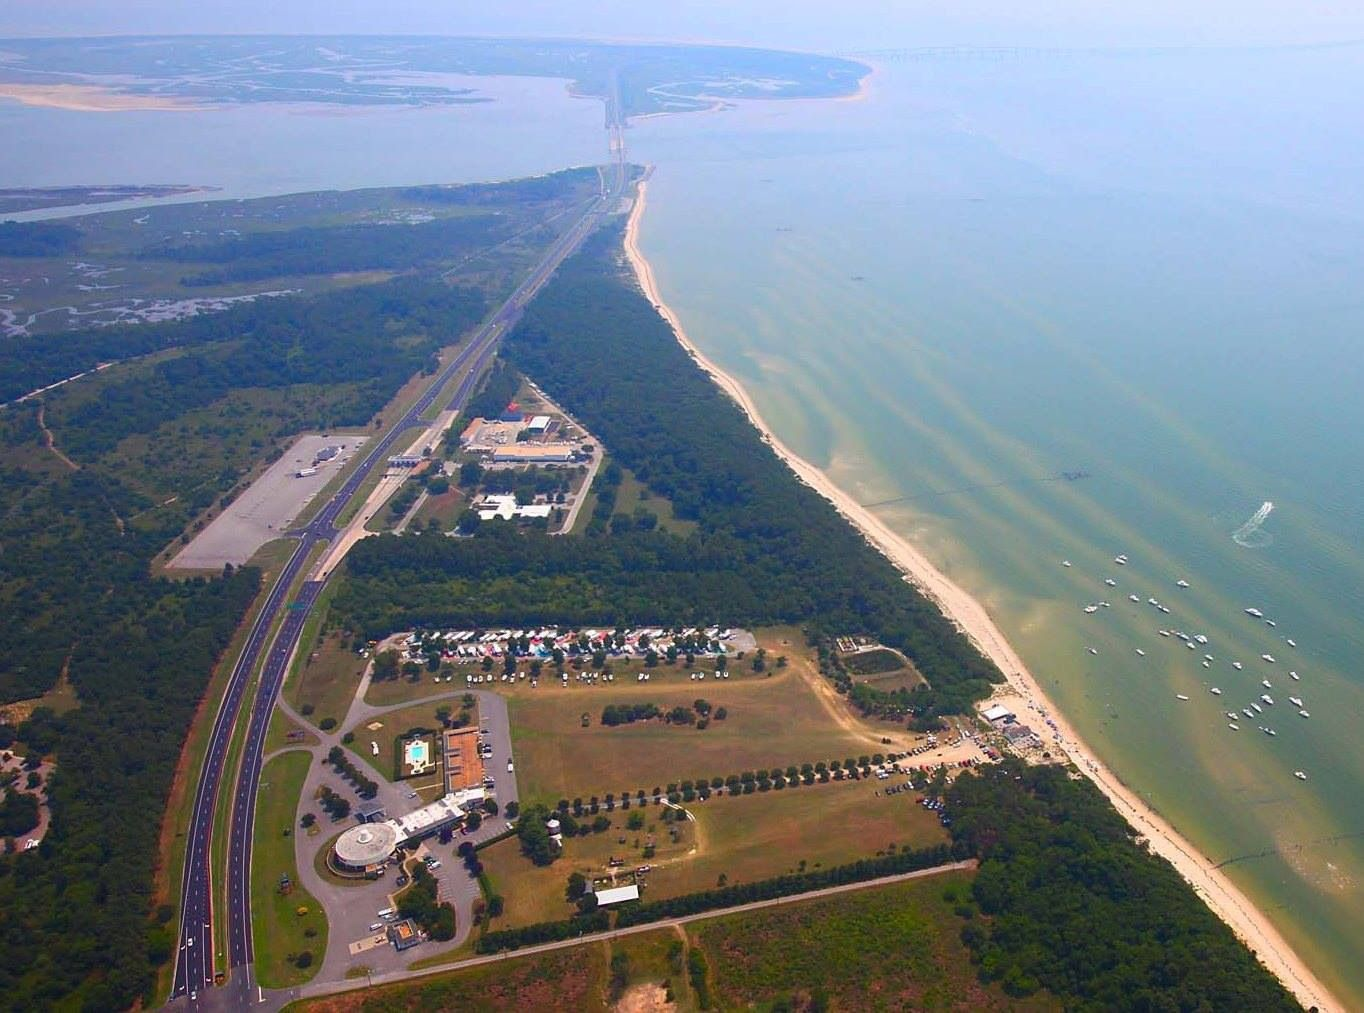 Foreground Is Sunset Beach Resort And The Entrance To Chesapeake Bay Bridge Tunnel In Background